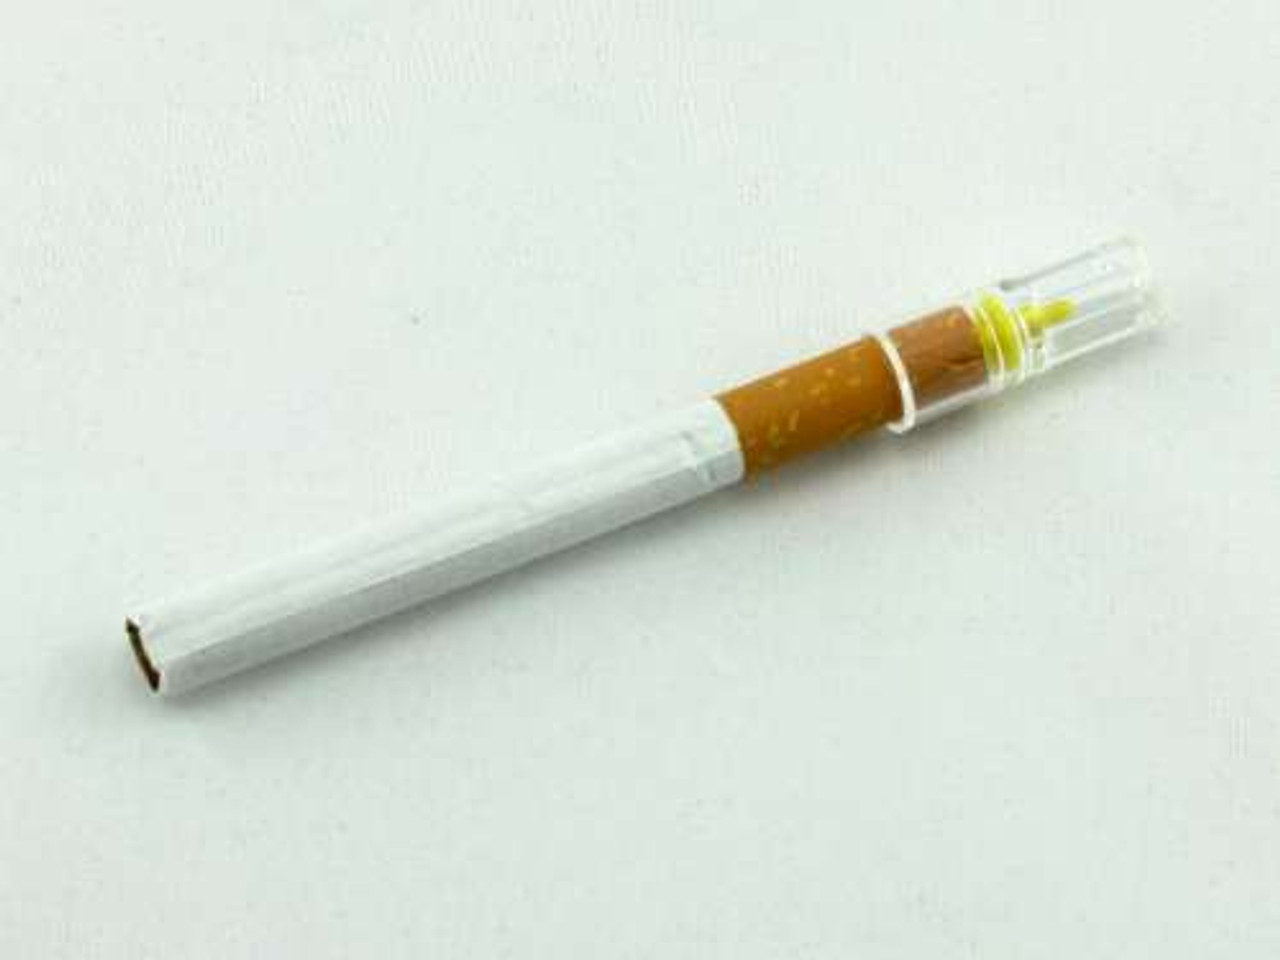 Tar Stopper Disposable Cigarette Filters